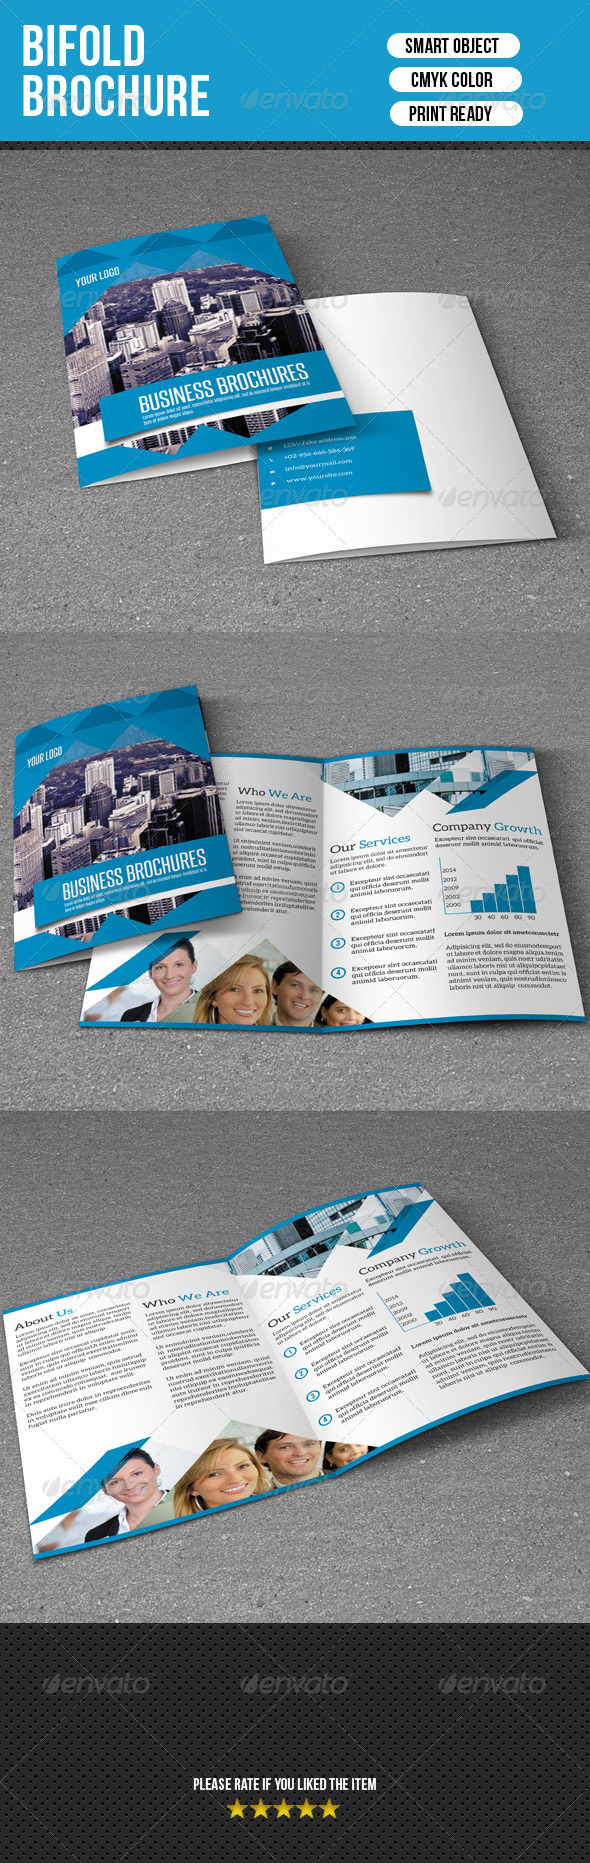 GraphicRiver Bifold Brochure-Business 7337862